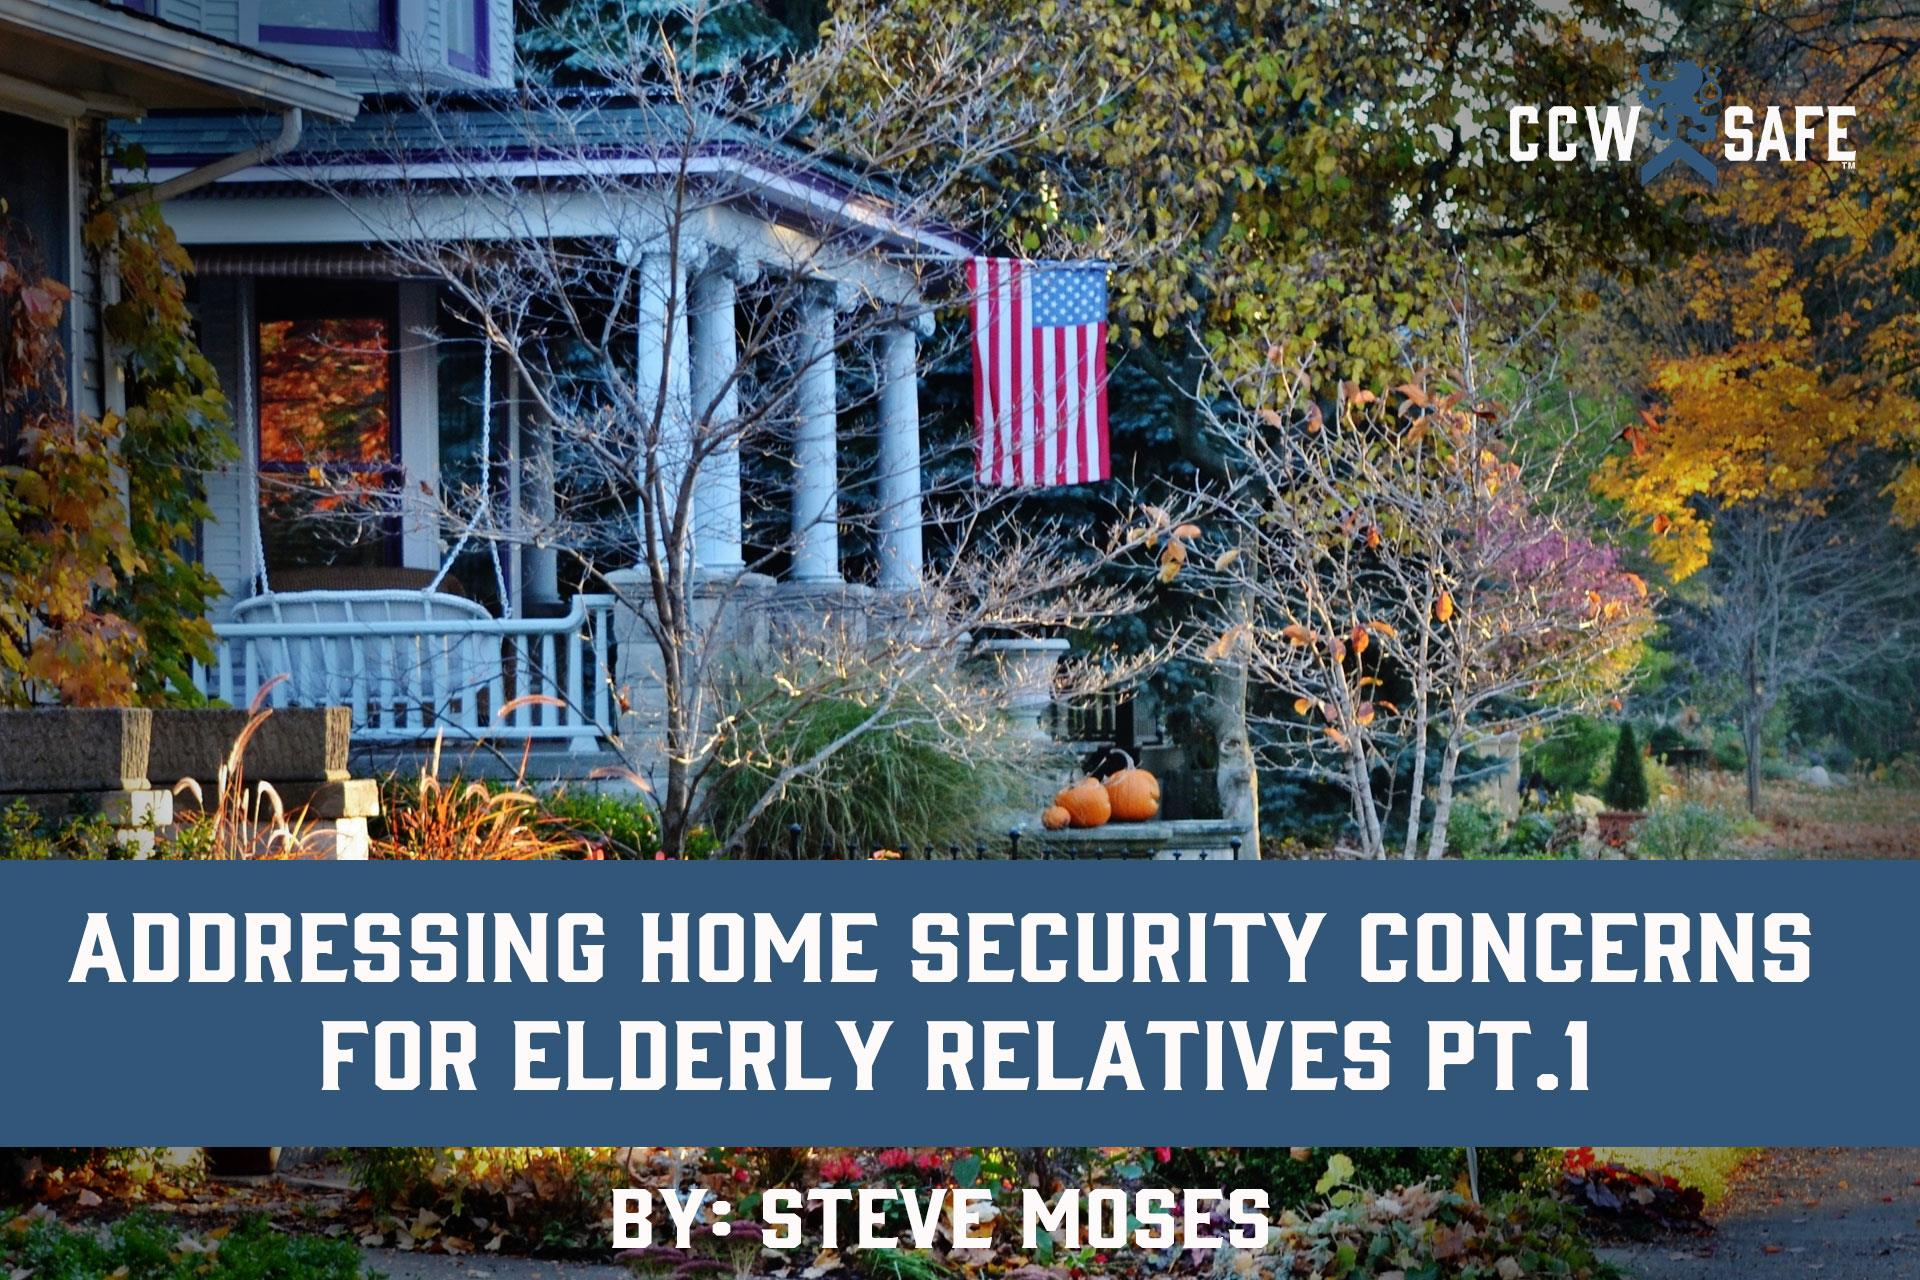 ADDRESSING HOME SECURITY CONCERNS FOR ELDERLY RELATIVES PT.1